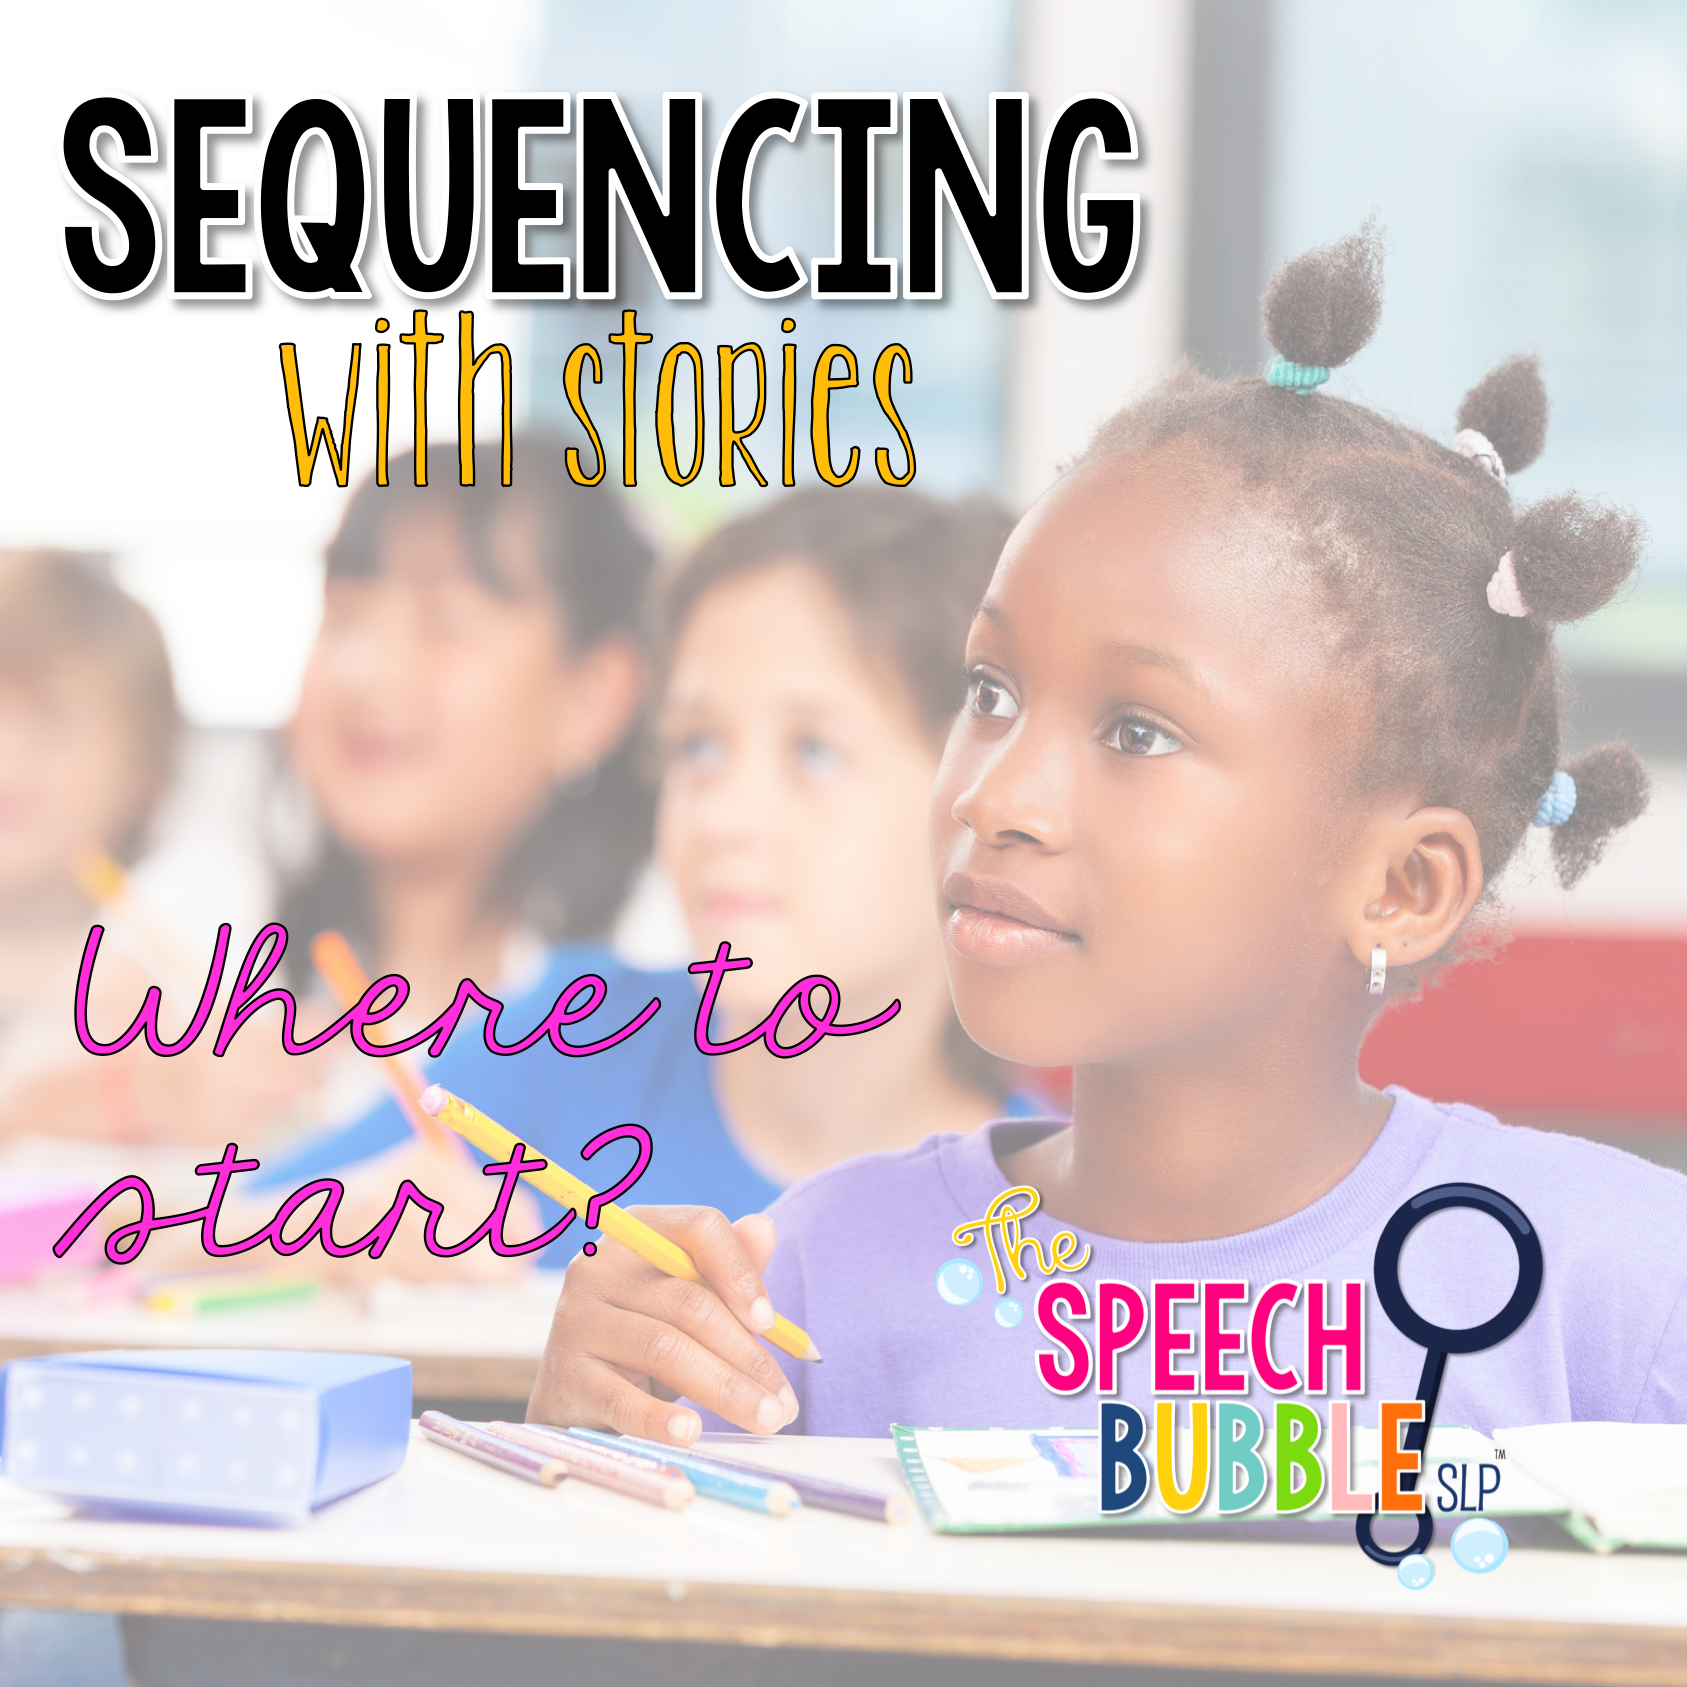 Sequencing With Stories, Where to Start